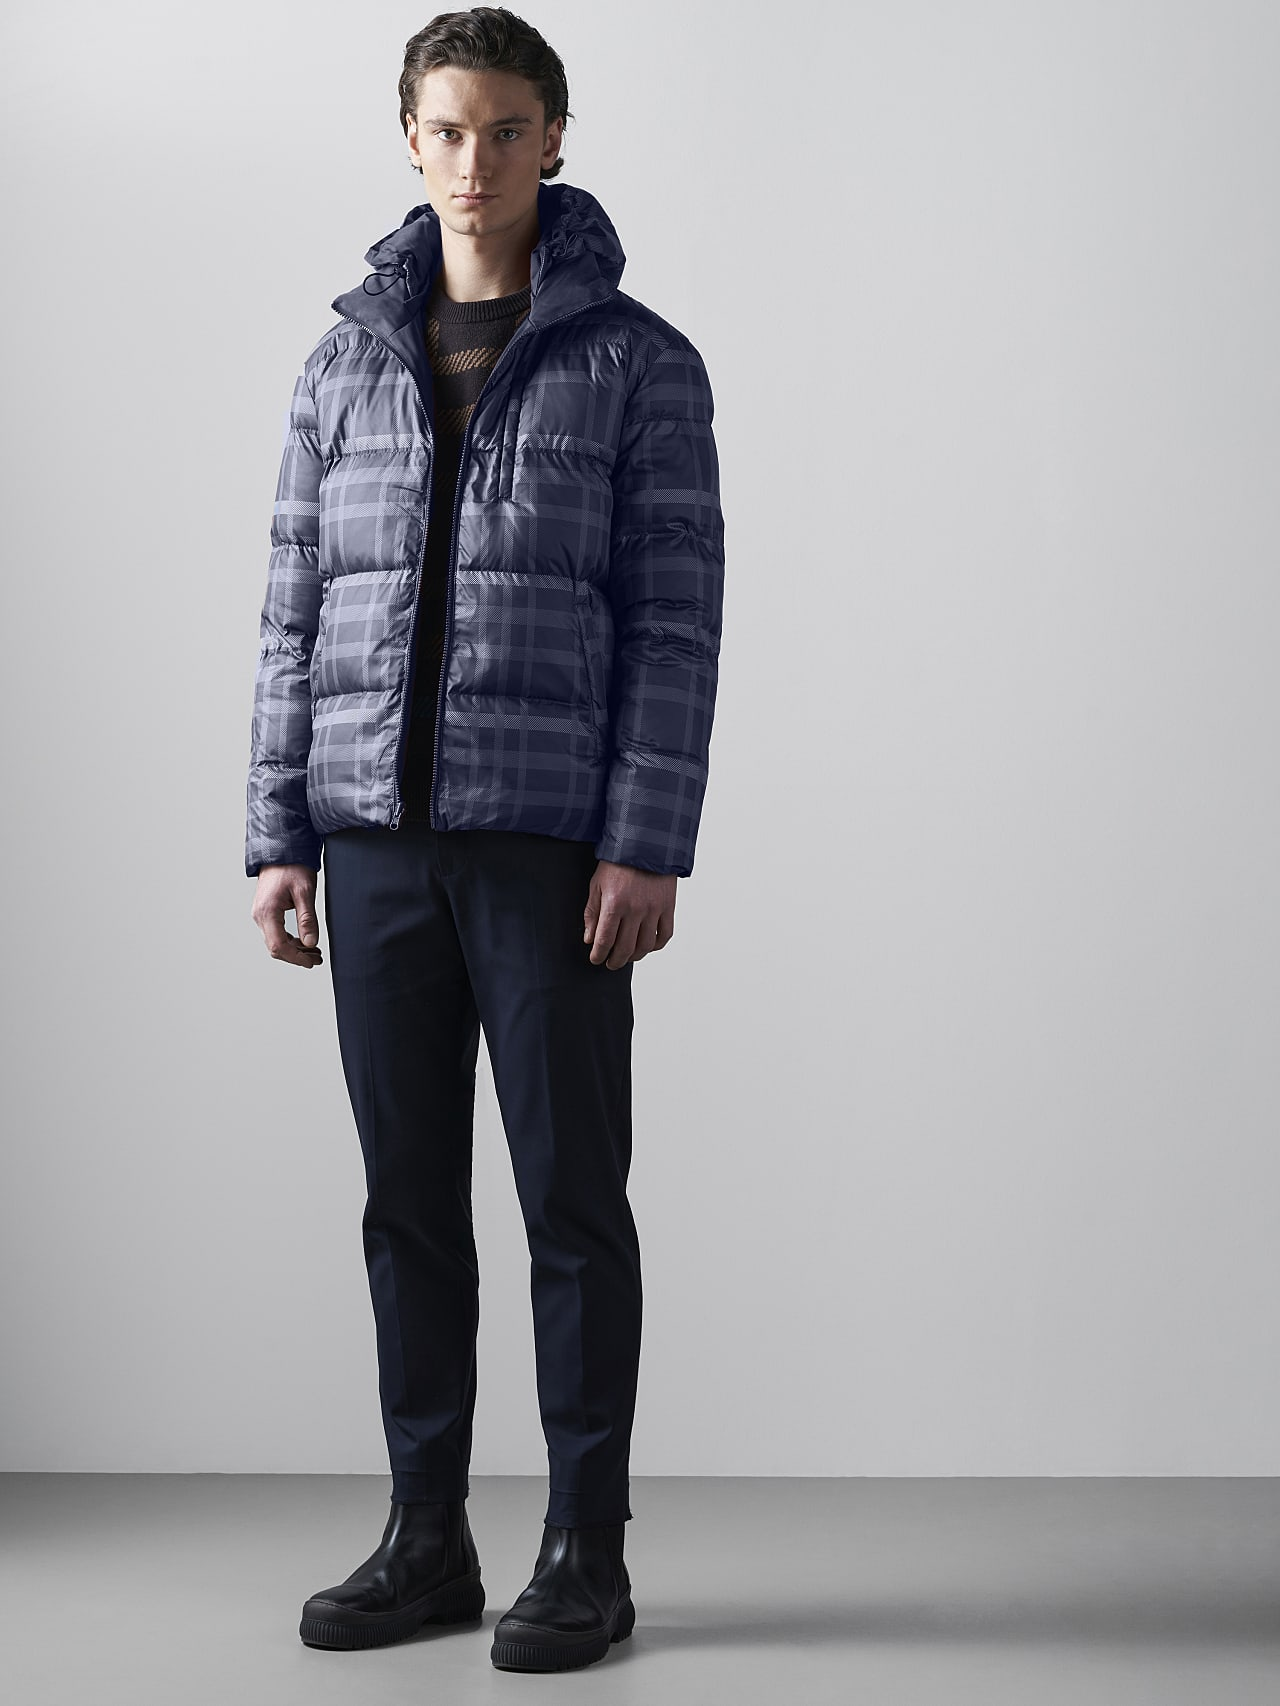 OTACE V1.Y5.02 Reversible 2-in-1 Puffer Jacket navy Front Alpha Tauri